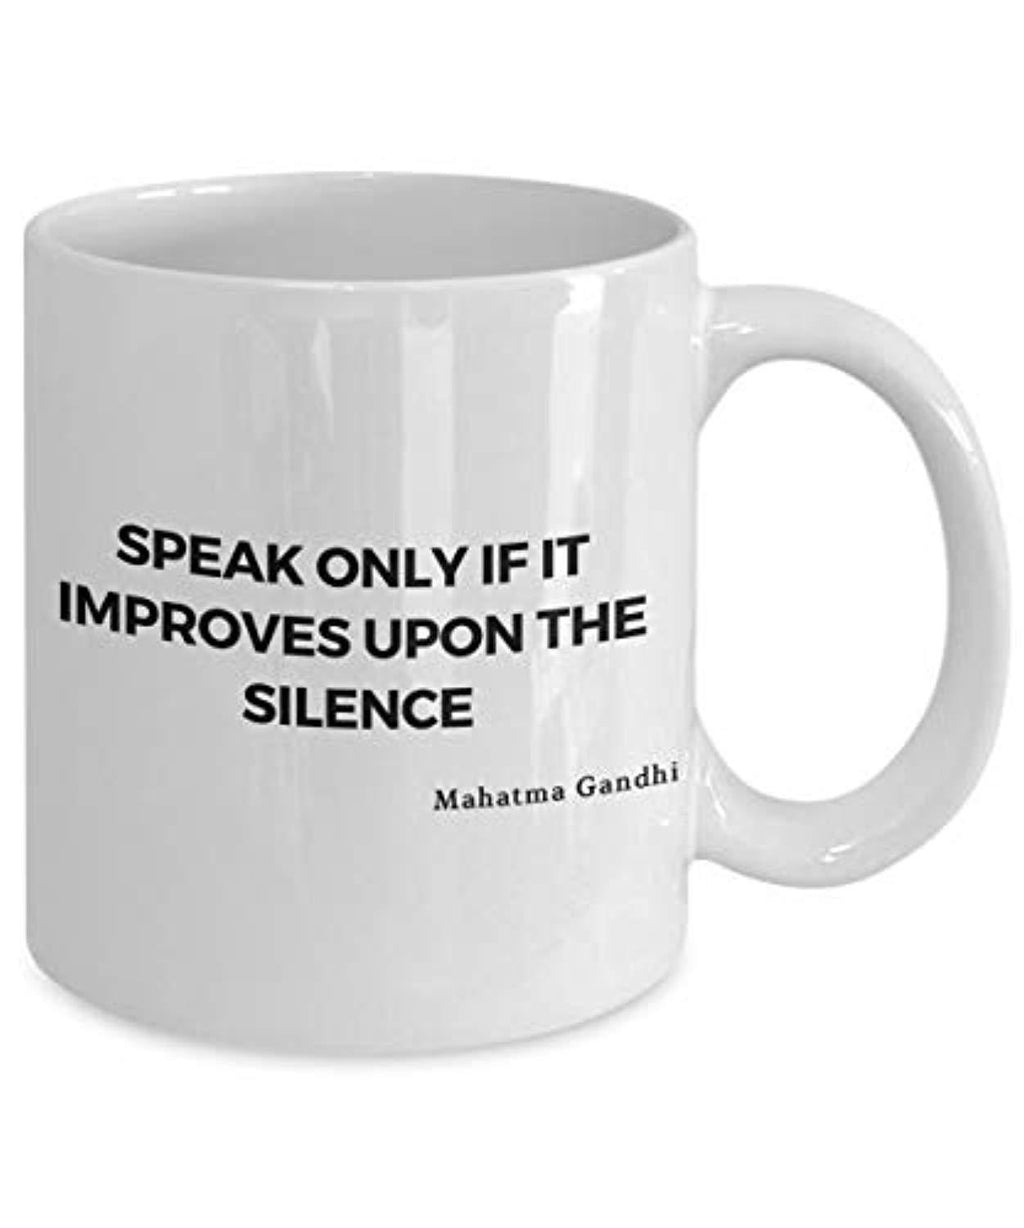 Speak Only If It Improves upon the silence mug